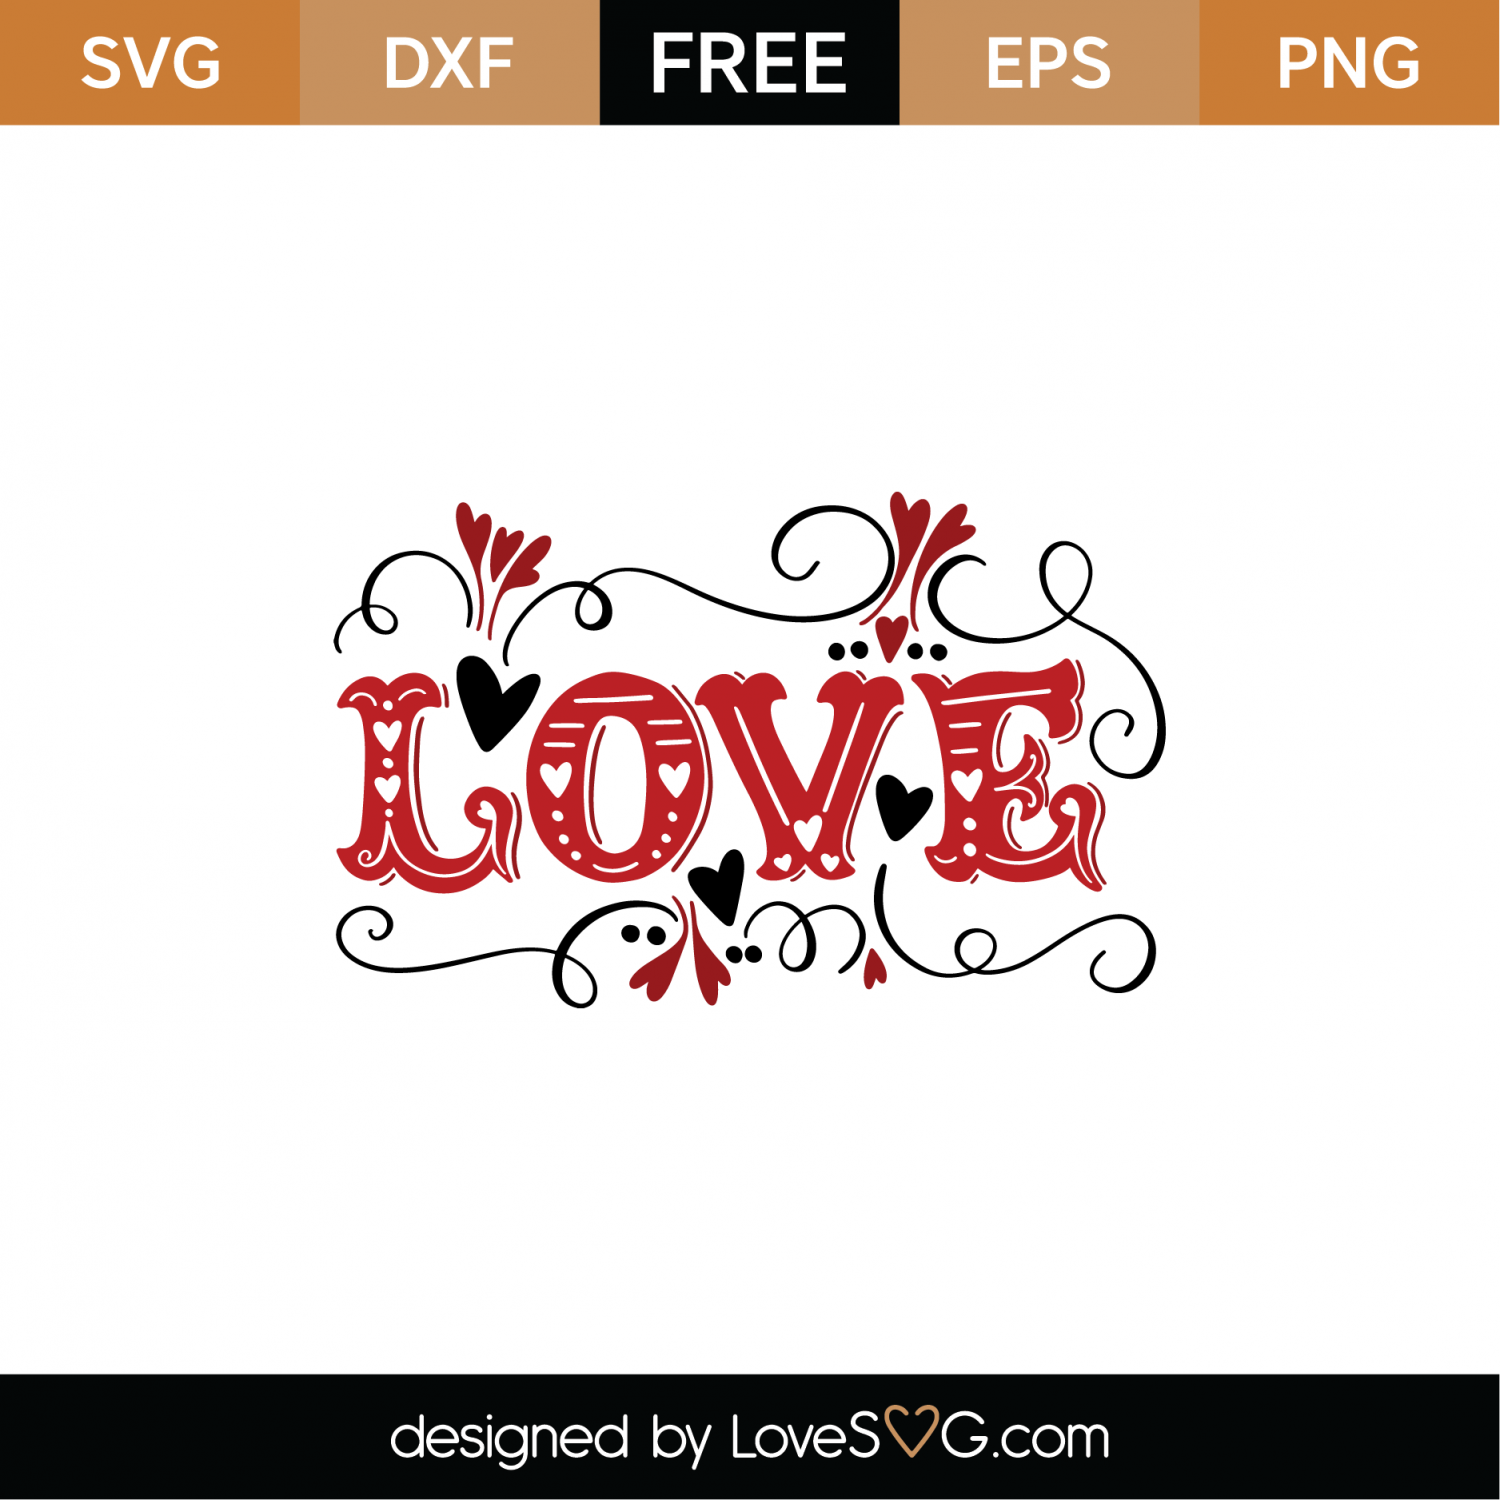 Download Free Love SVG Cut File | Lovesvg.com